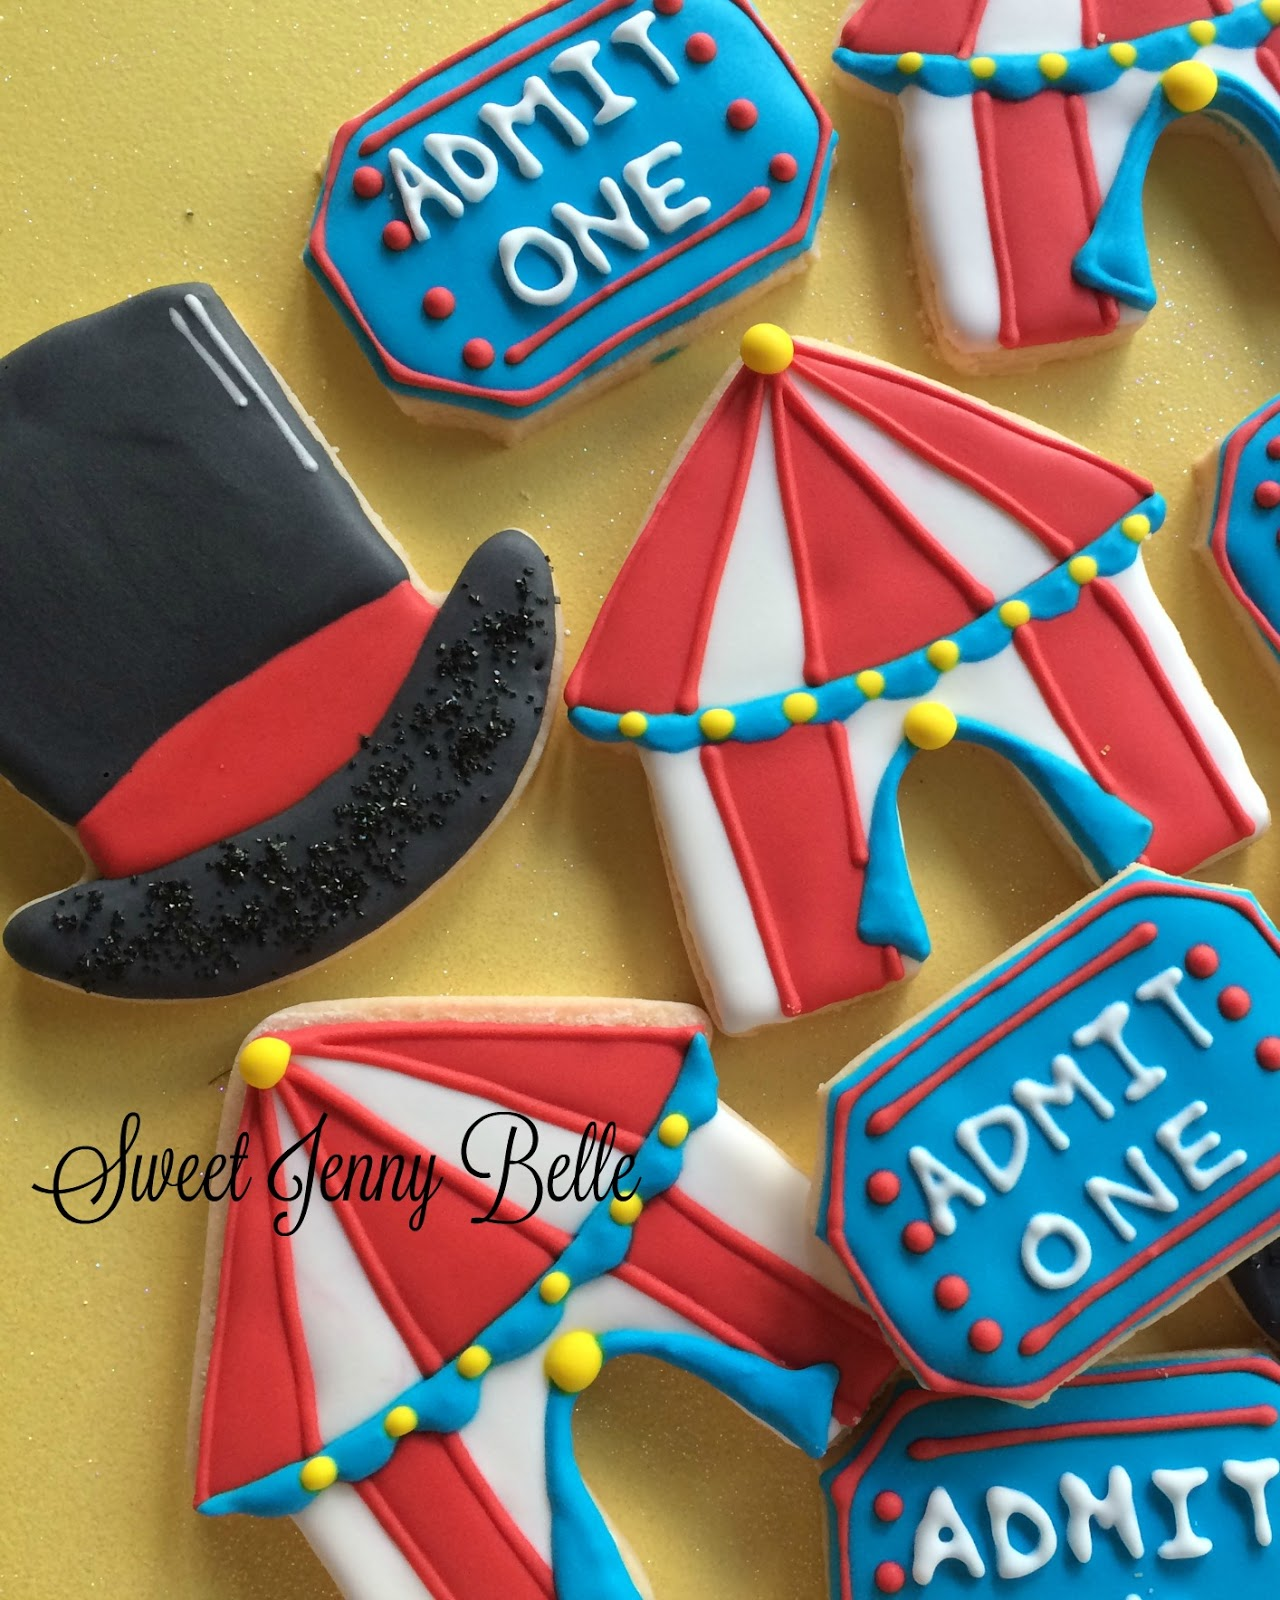 Confection Connection - Circus Tent and Ticket Cookie Tutorial  sc 1 st  Sweet Jenny Belle & June 2016 | Sweet Jenny Belle - easy sugar cookie decorating ...